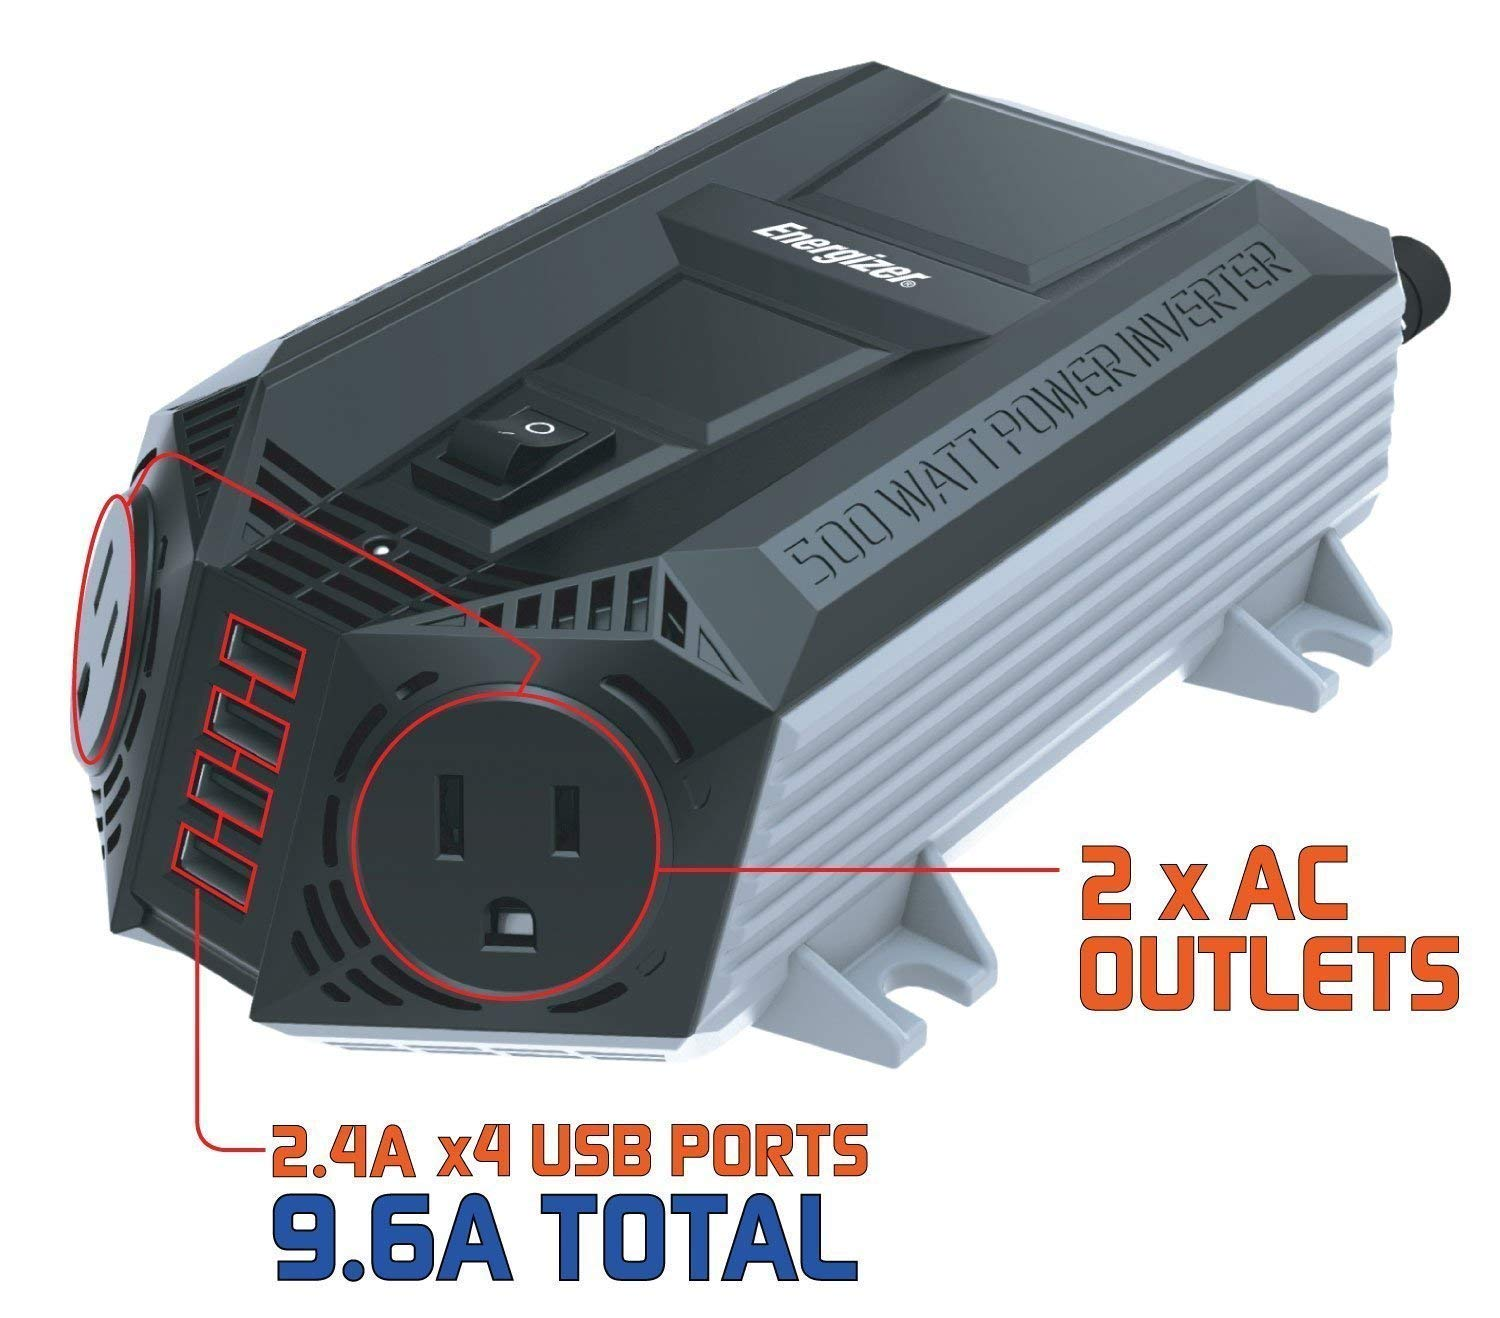 Energizer 500 Watt Power Inverter 12v Dc To Ac 4 X 24 W Circuit Diagram 24a Usb Charging Ports Total 96a Cell Phones Accessories